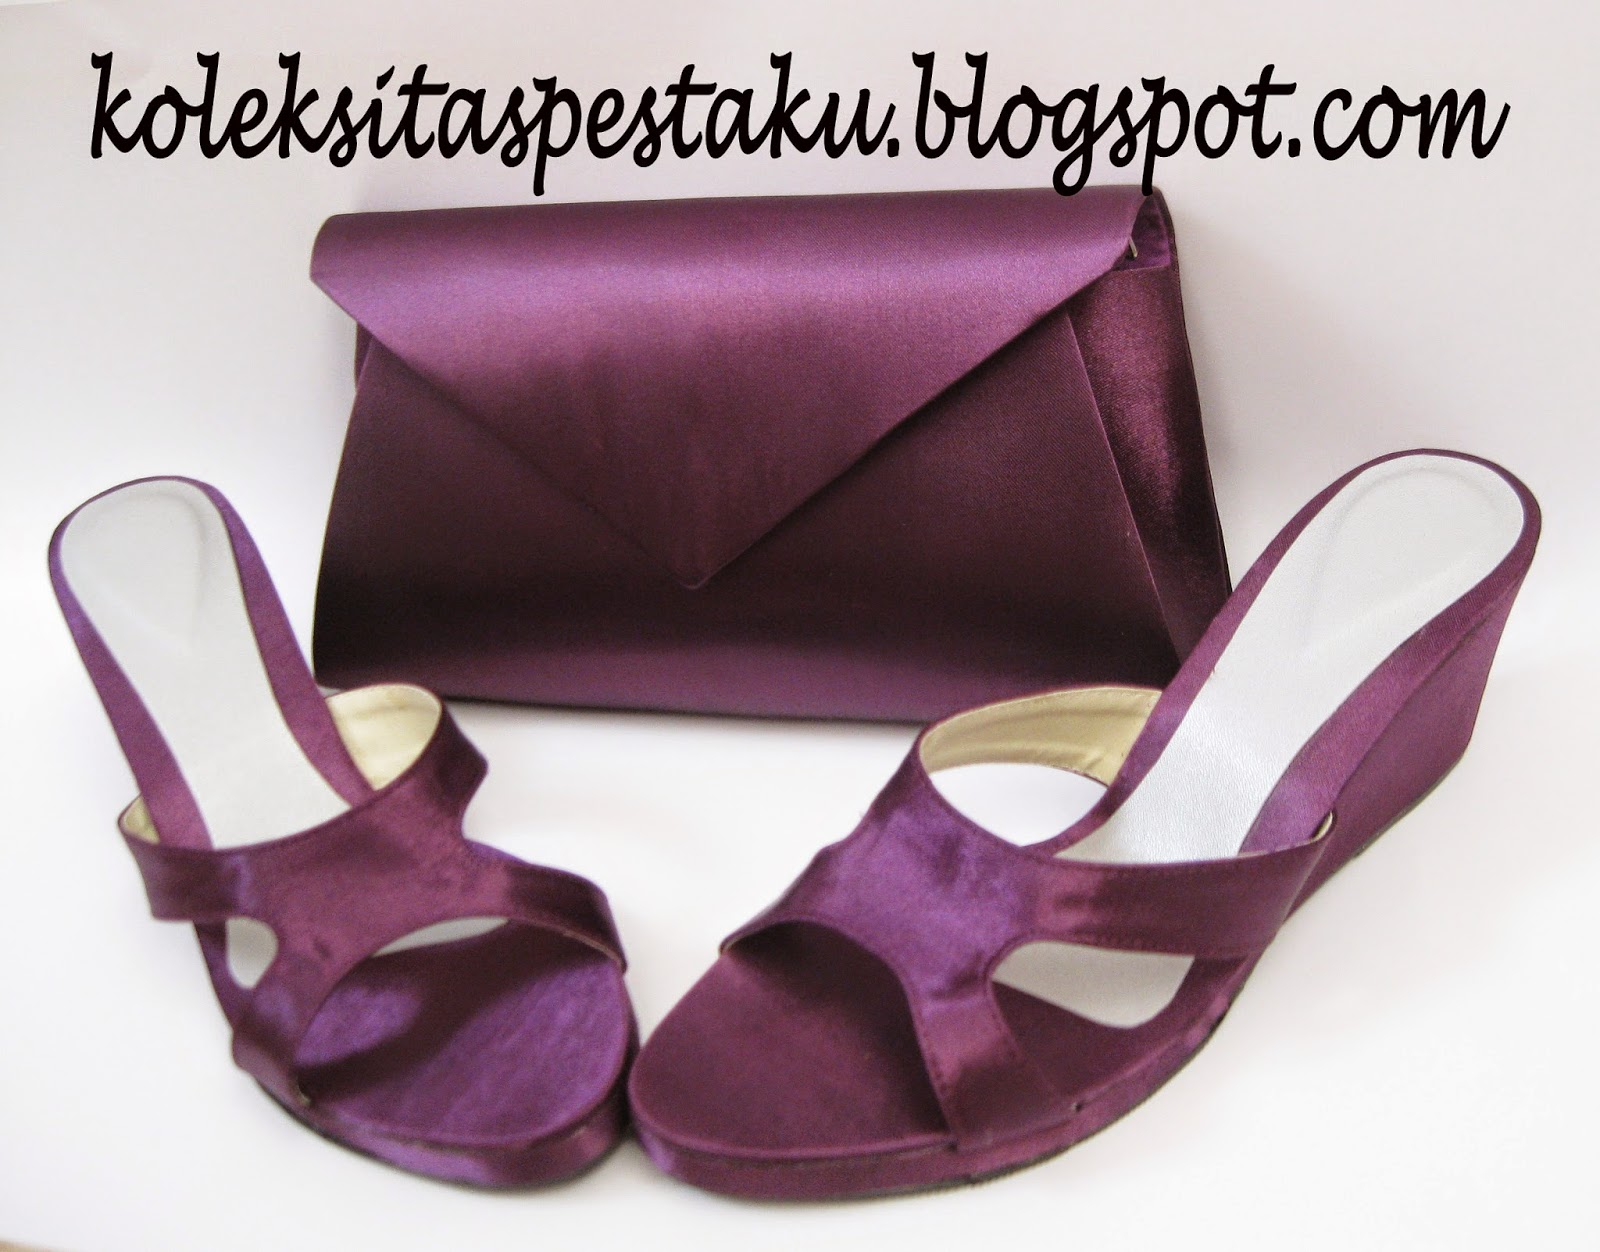 Tas Pesta Clutch Bag dan Sandal Pesta Model Wedges Polos Tanpa Payet Warna Ungu Mewah Elegant